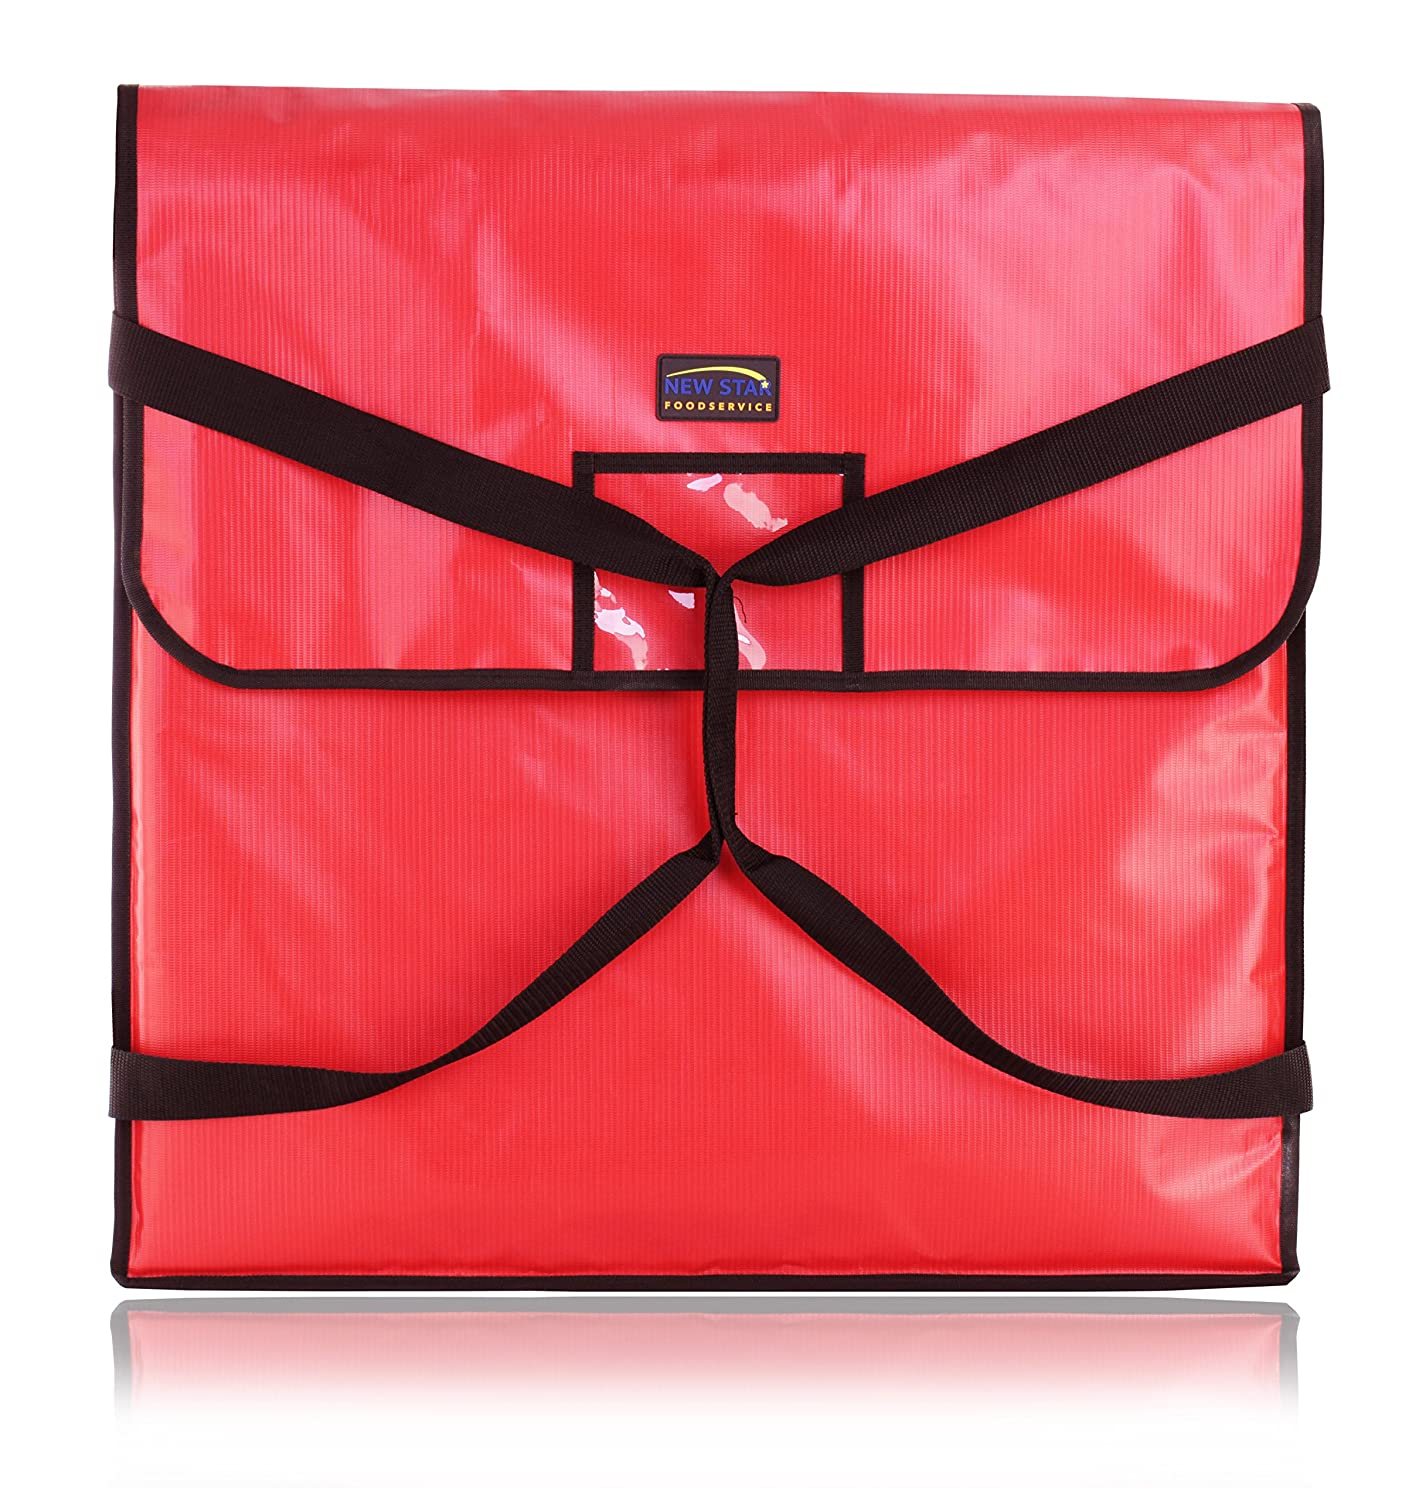 New Star 50400 Insulated Pizza Delivery Bag, 24 by 60cm by 13cm, Red   B01CHBFYGO